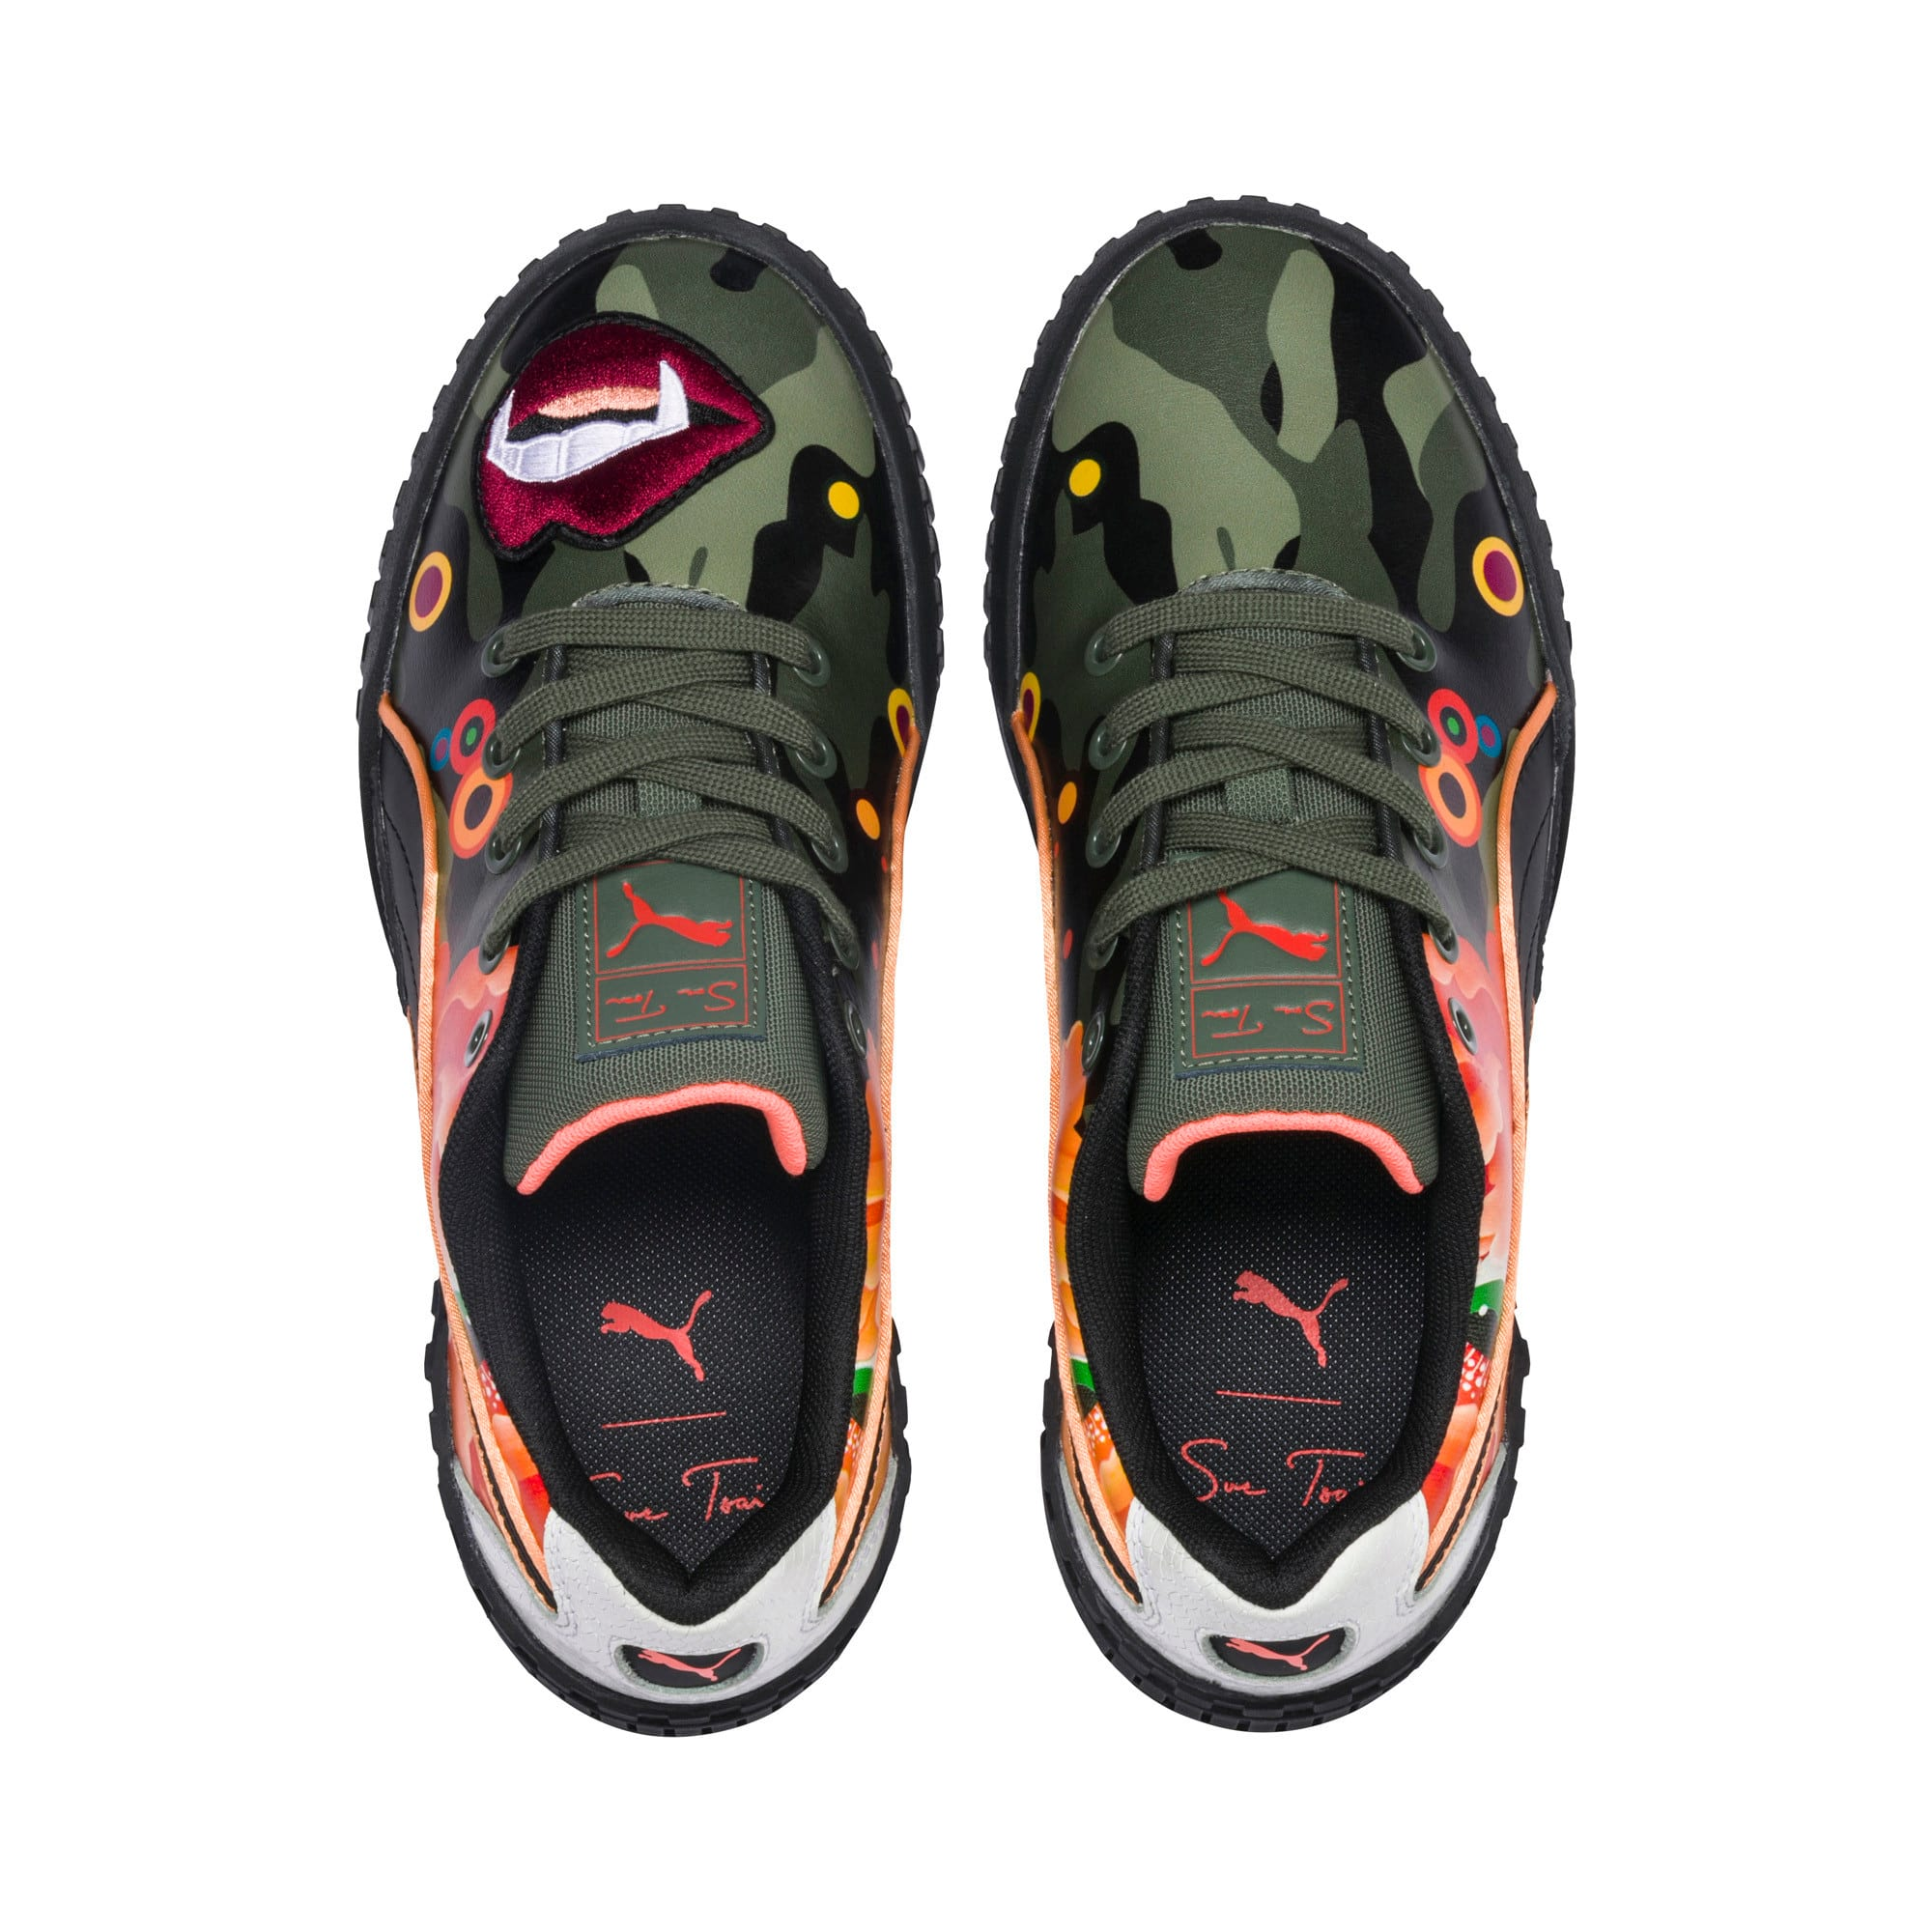 Thumbnail 7 of PUMA x SUE TSAI Cali 'Peonies Camo' sneakers voor dames, Puma Black-Puma Black, medium